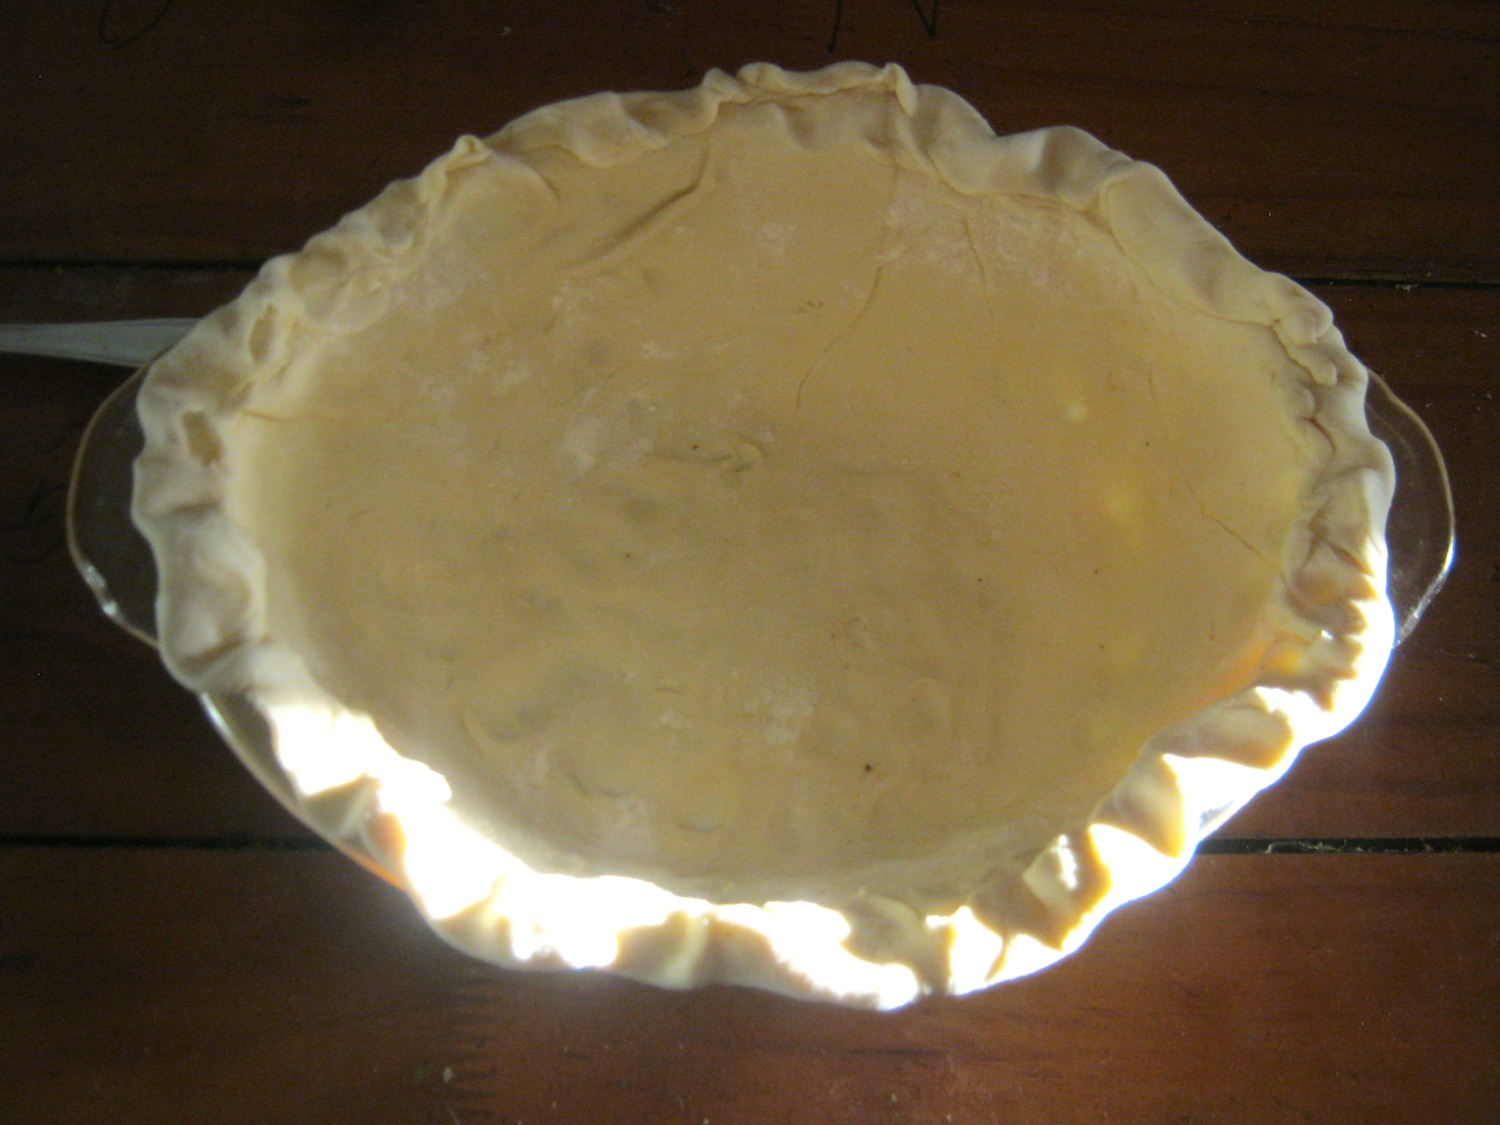 Raw chicken pot pie dough in a casserole dish